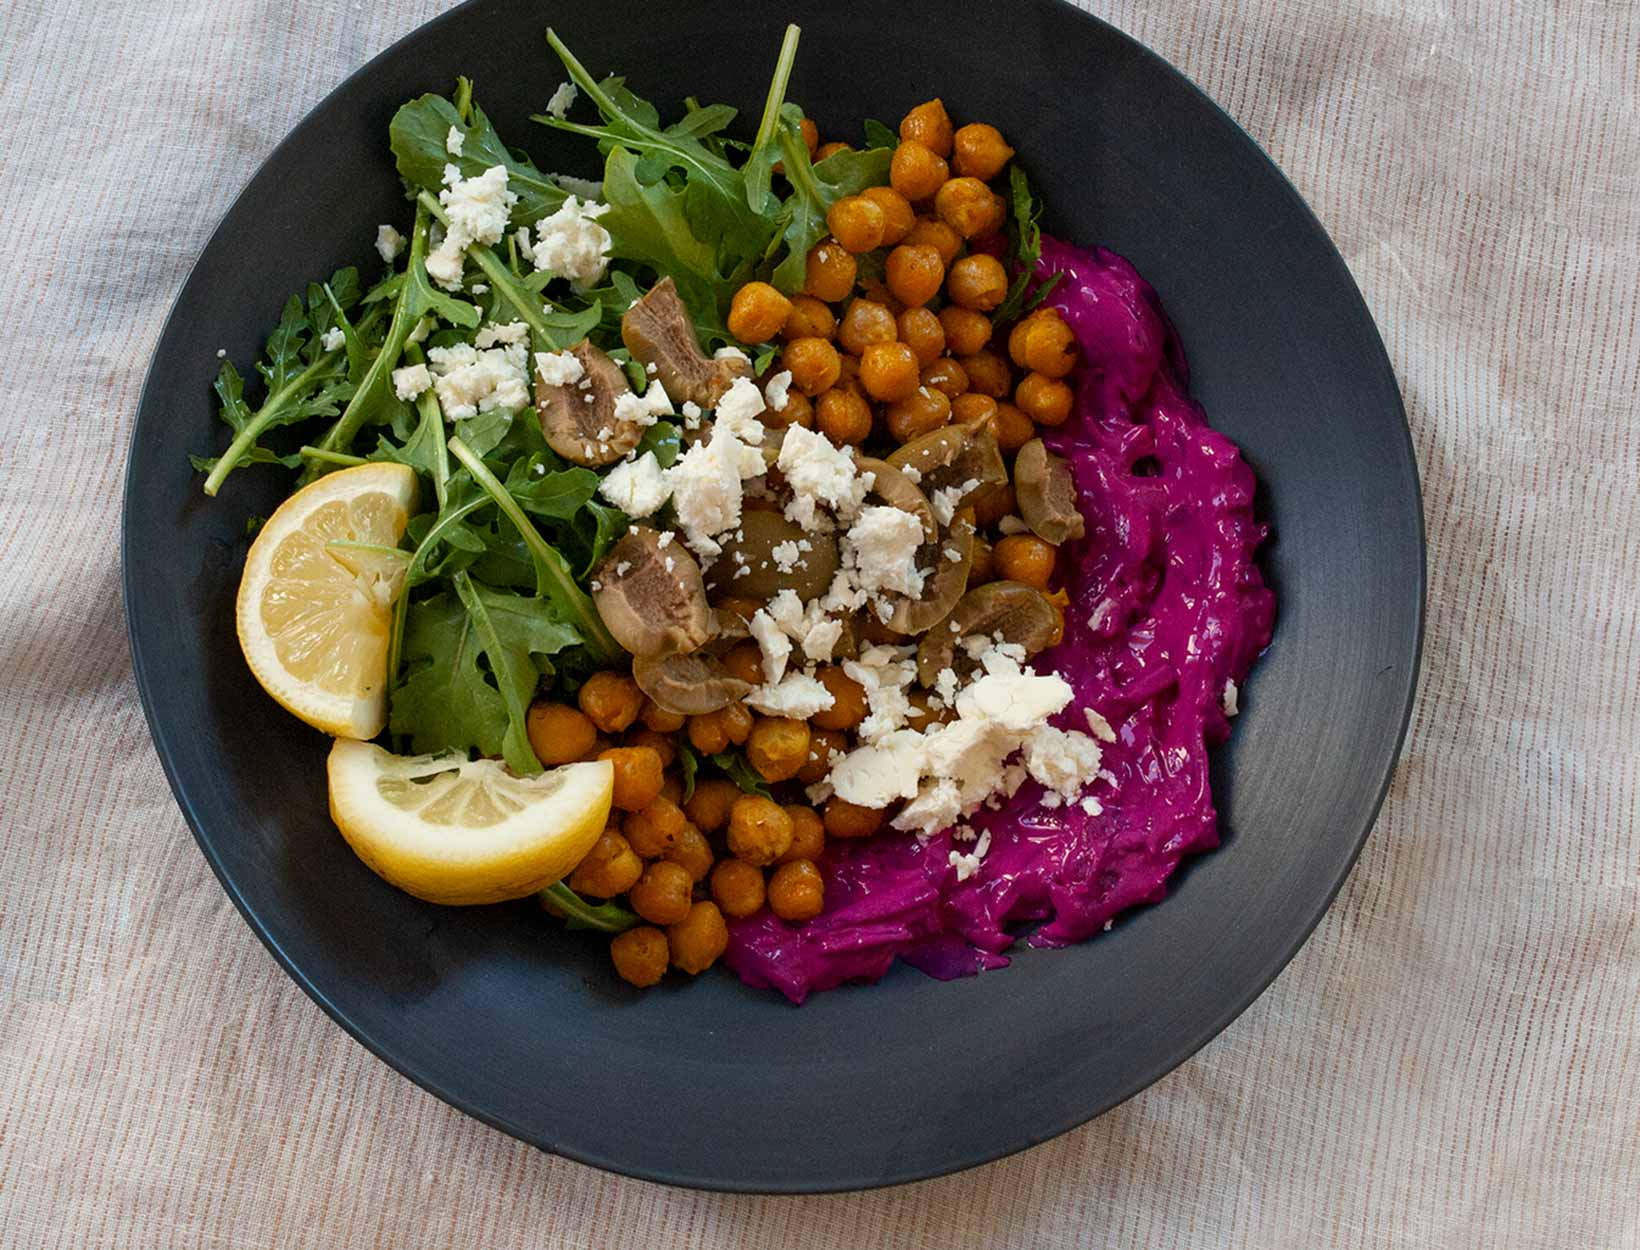 Spiced Chickpea Bowls with Pickled Beet Tzatziki